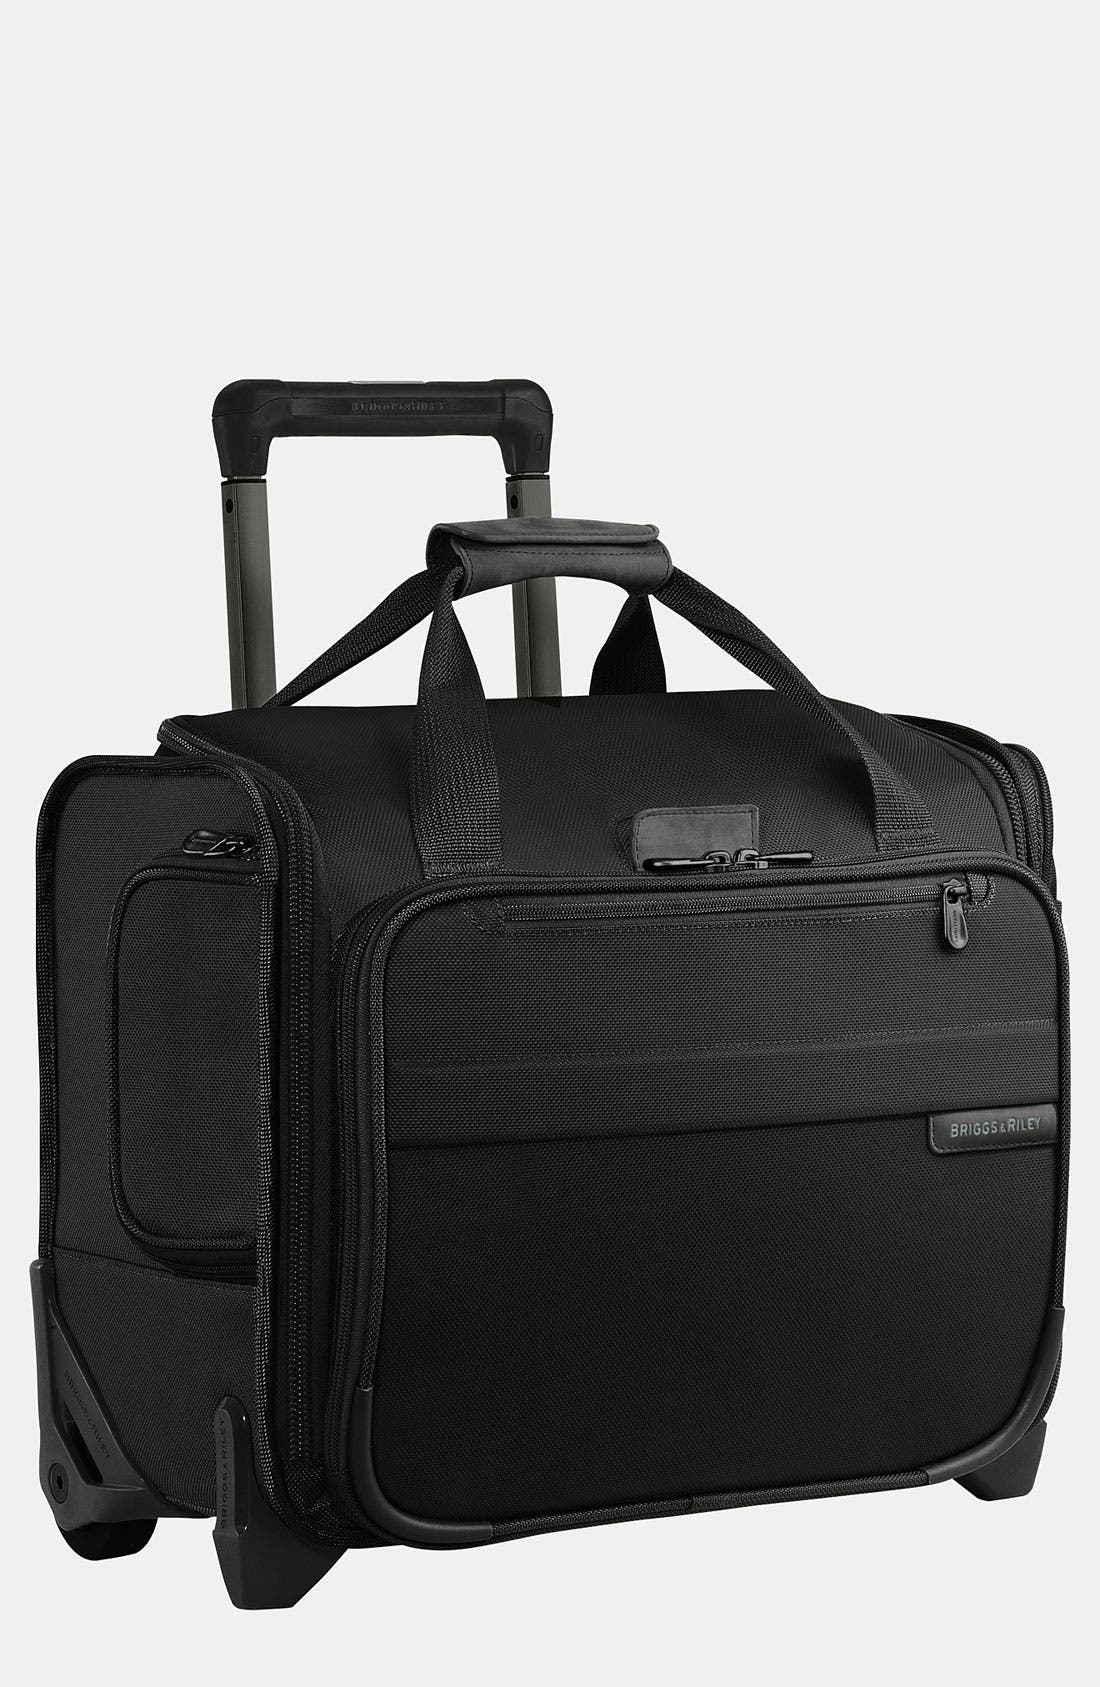 Alternate Image 1 Selected - Briggs & Riley 'Baseline' Rolling Cabin Bag (16 Inch)